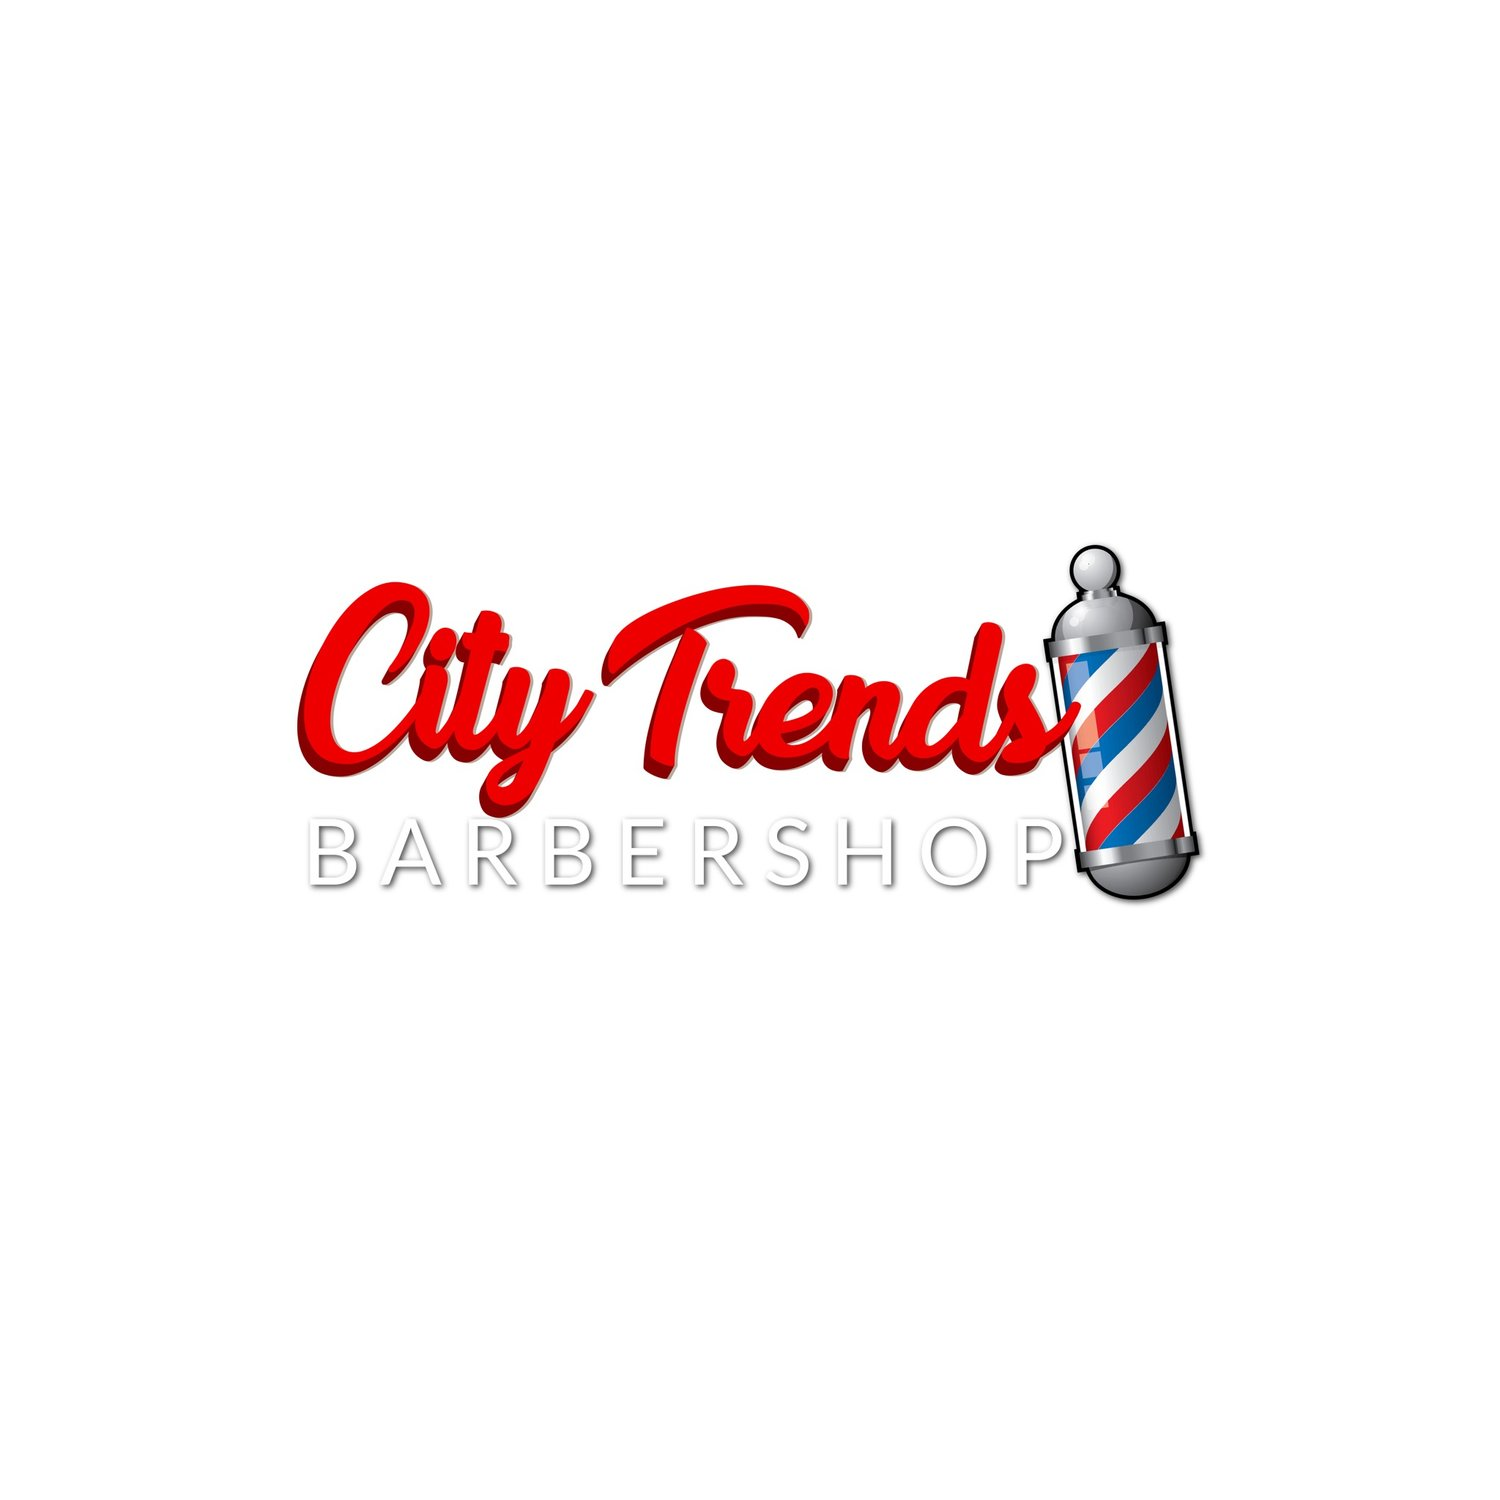 City Trends Barbershop